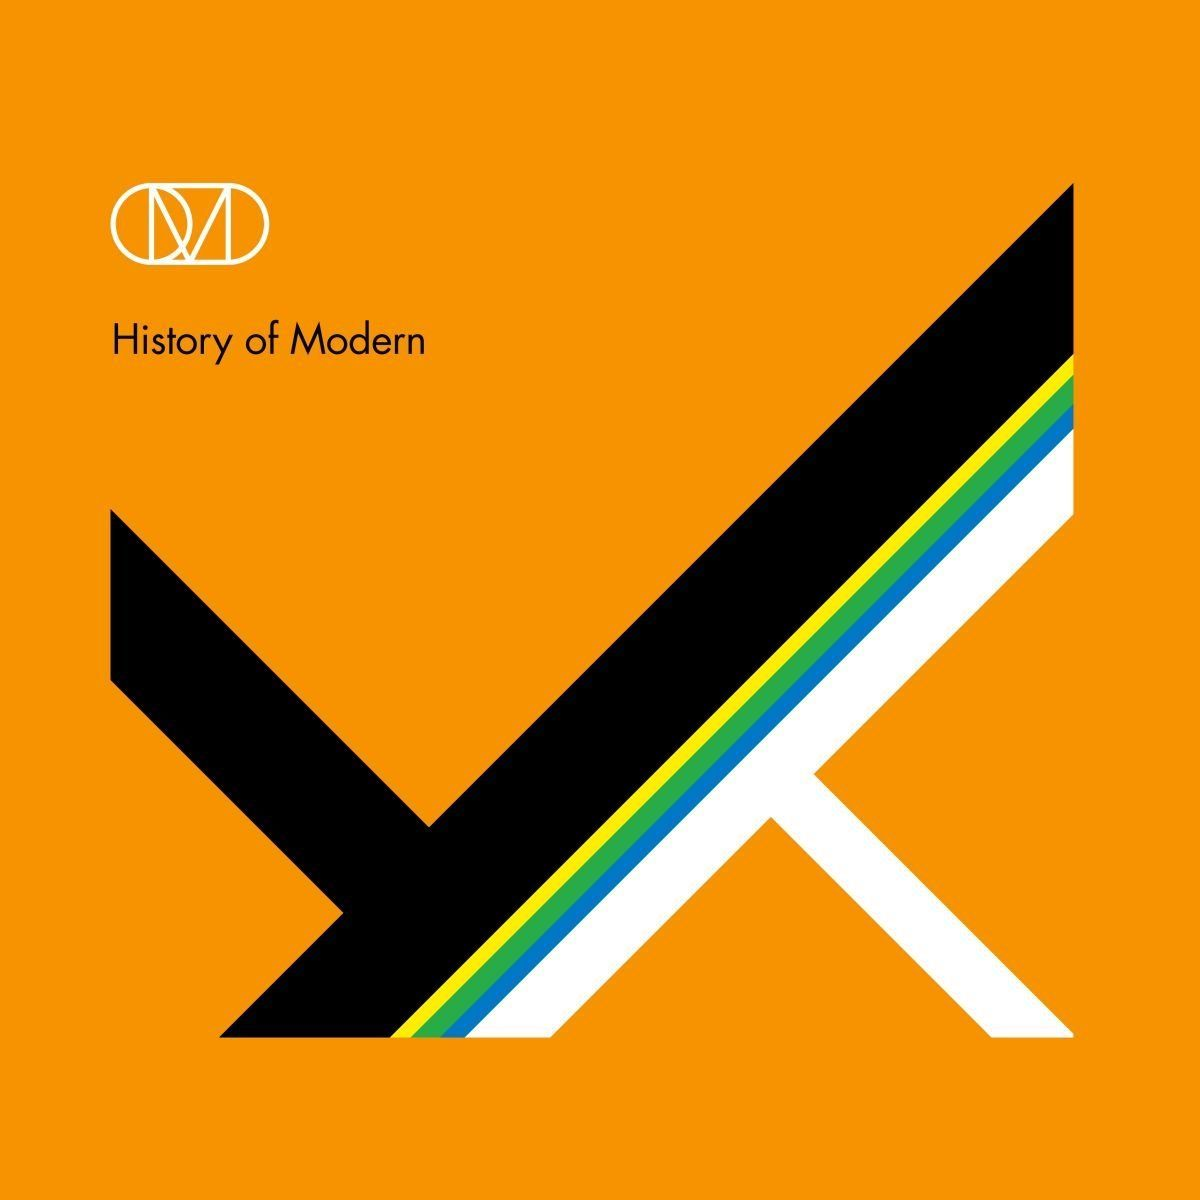 Orchestral Manoeuvres In The Dark - History Of Modern album cover